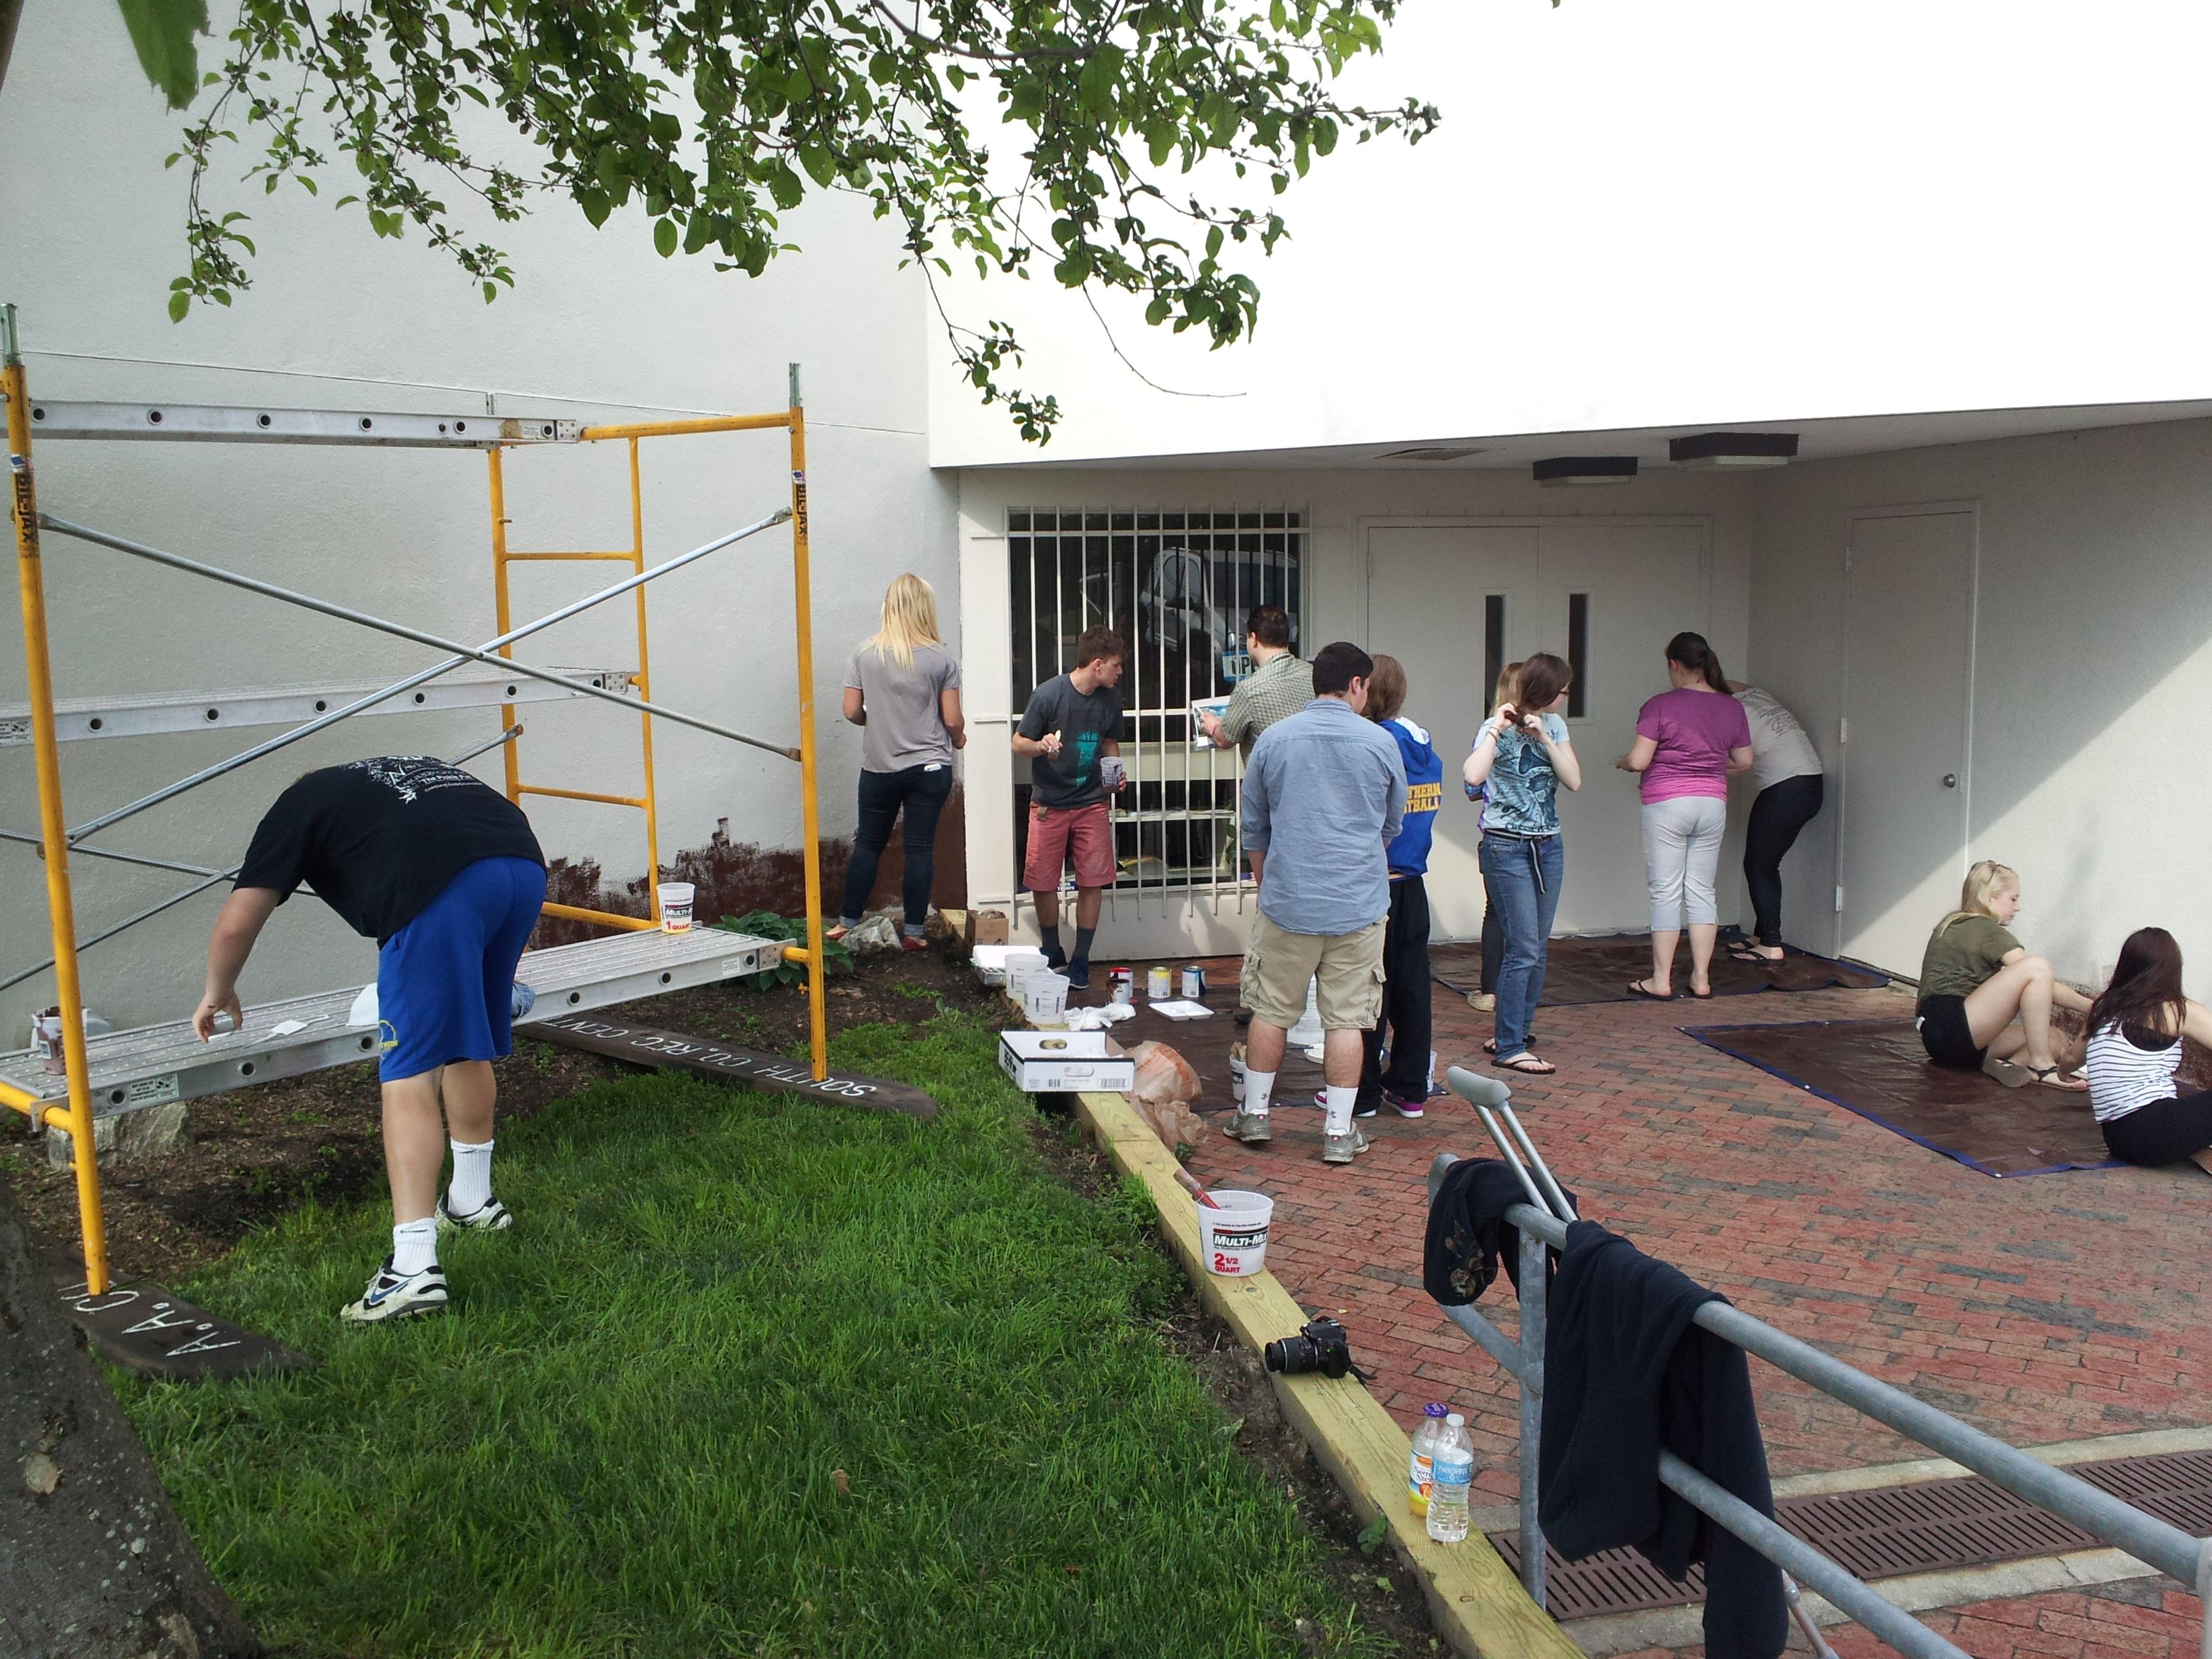 Students And Volunteers Start Painting A Mural At The South County Recreation Center Recreation Centers Recreation Brooklyn Park